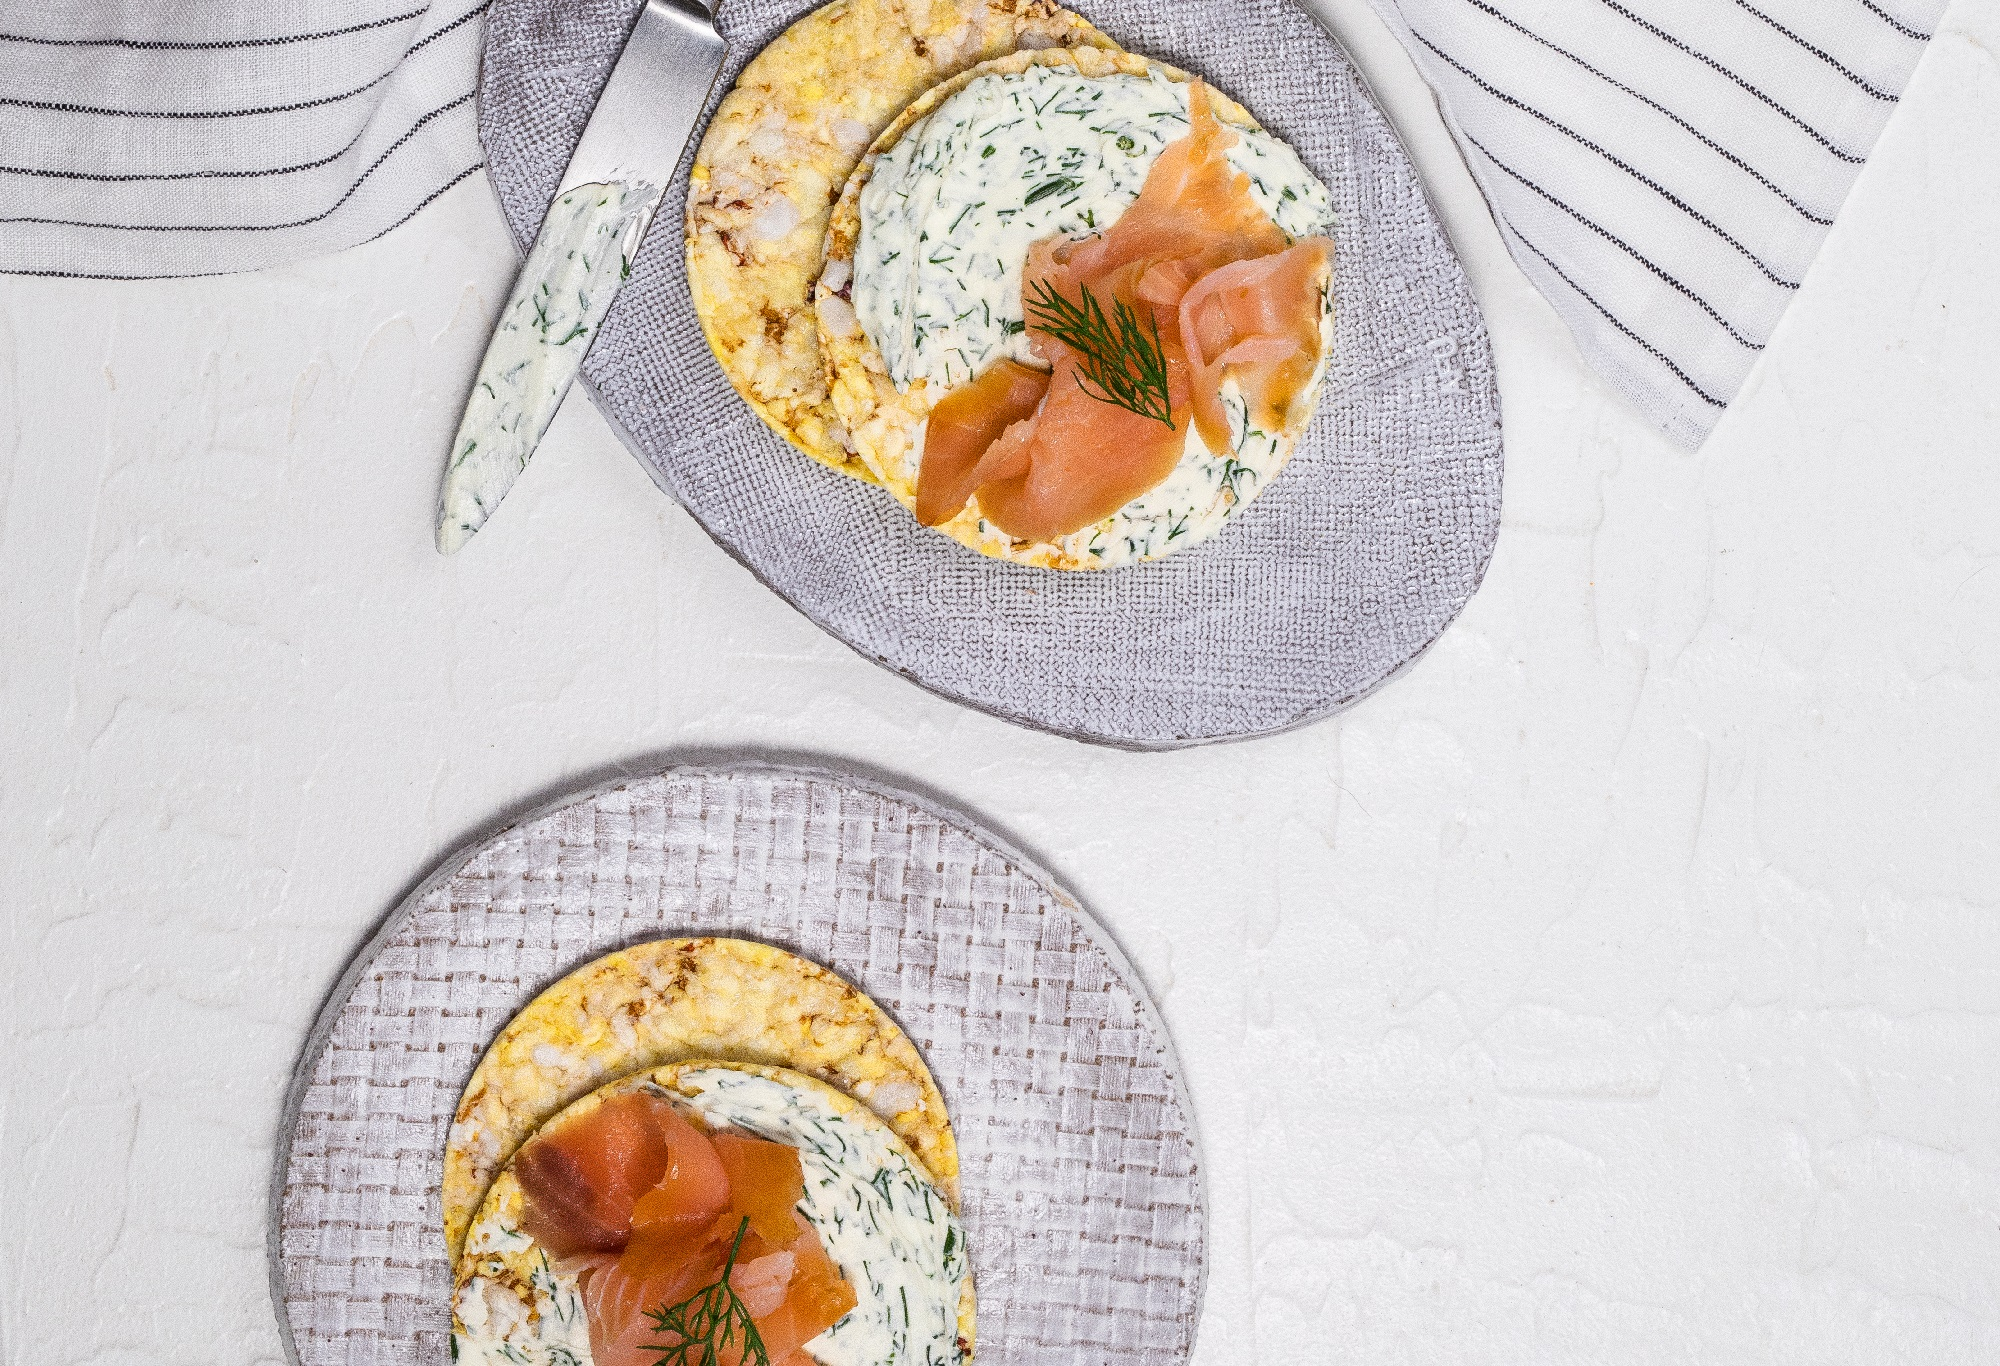 Dill cream cheese with smoked salmon on CORN THINS slices